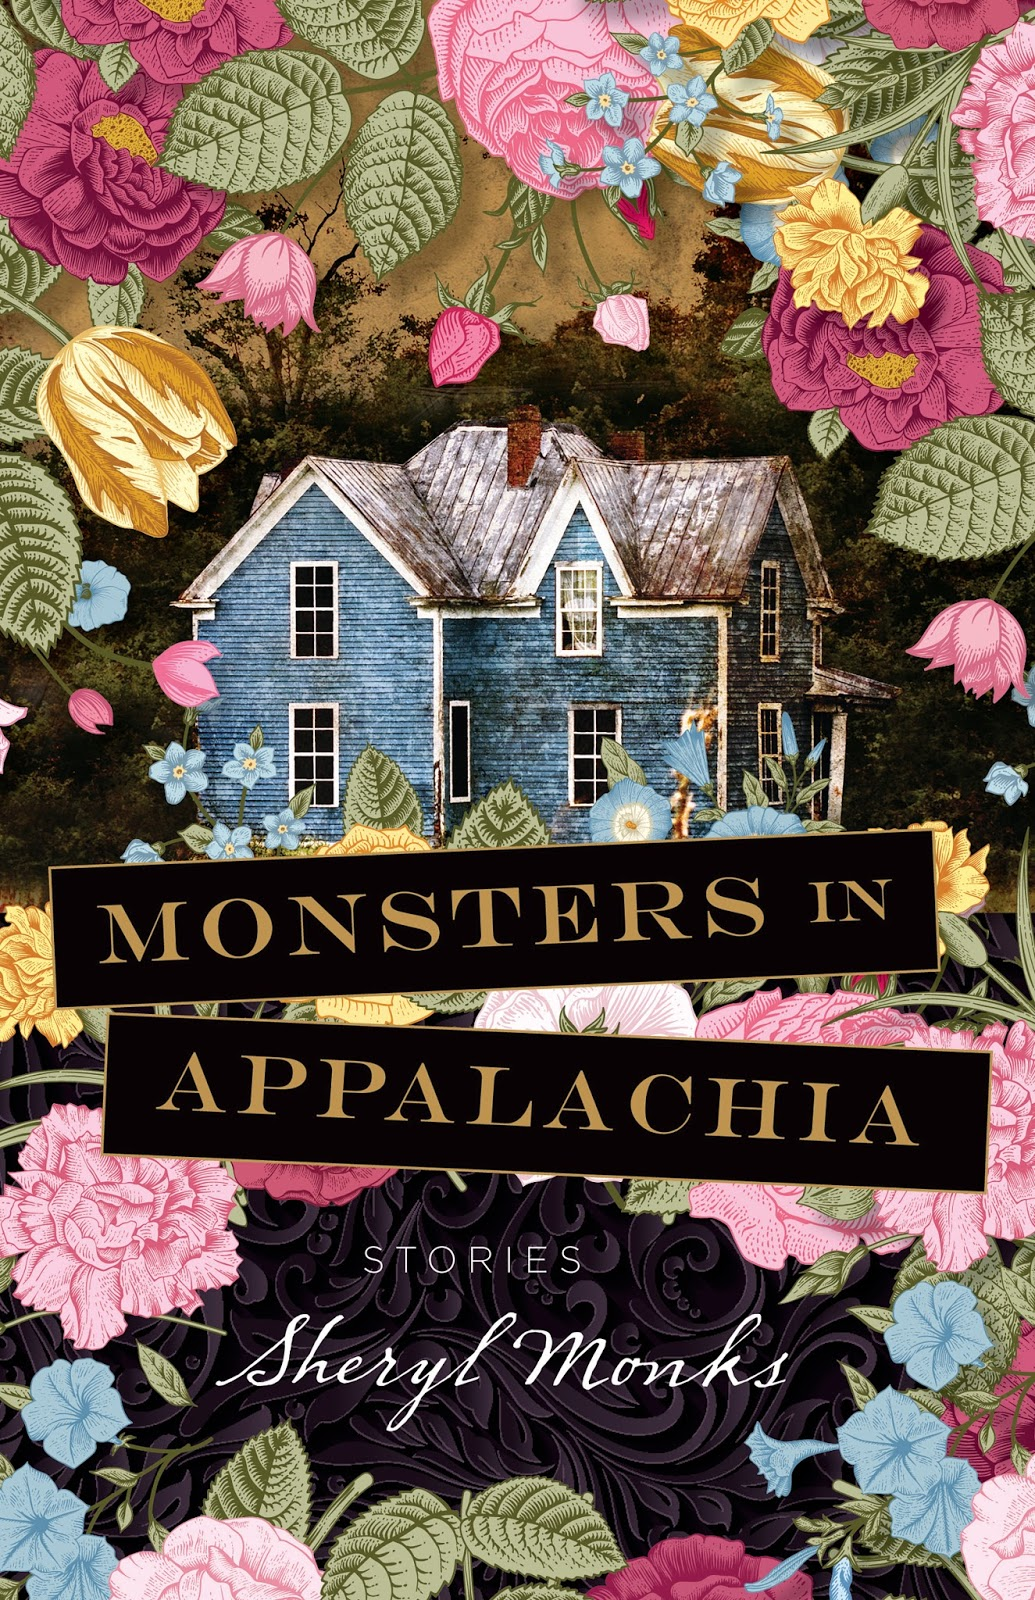 Monsters In Appalachia By Sheryl Monks (vandalia Press)